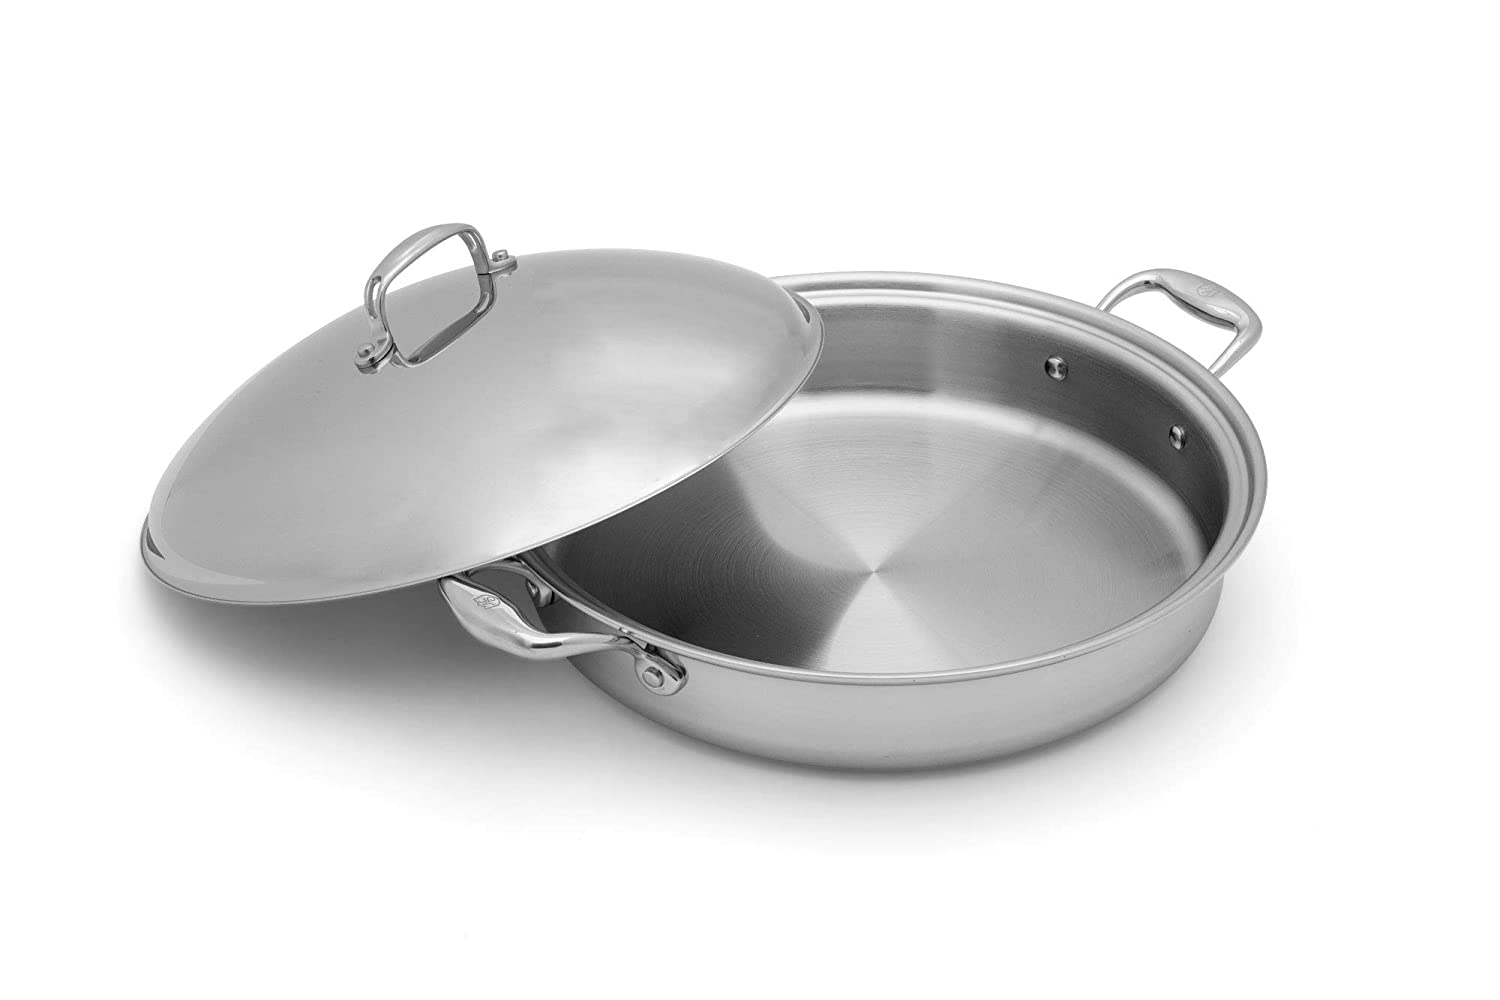 Heritage Steel 5 Quart Sauteuse Pan with Lid – Titanium Strengthened 316Ti Stainless Steel with 7-Ply Construction – Induction-Ready and Dishwasher-Safe, Made in USA